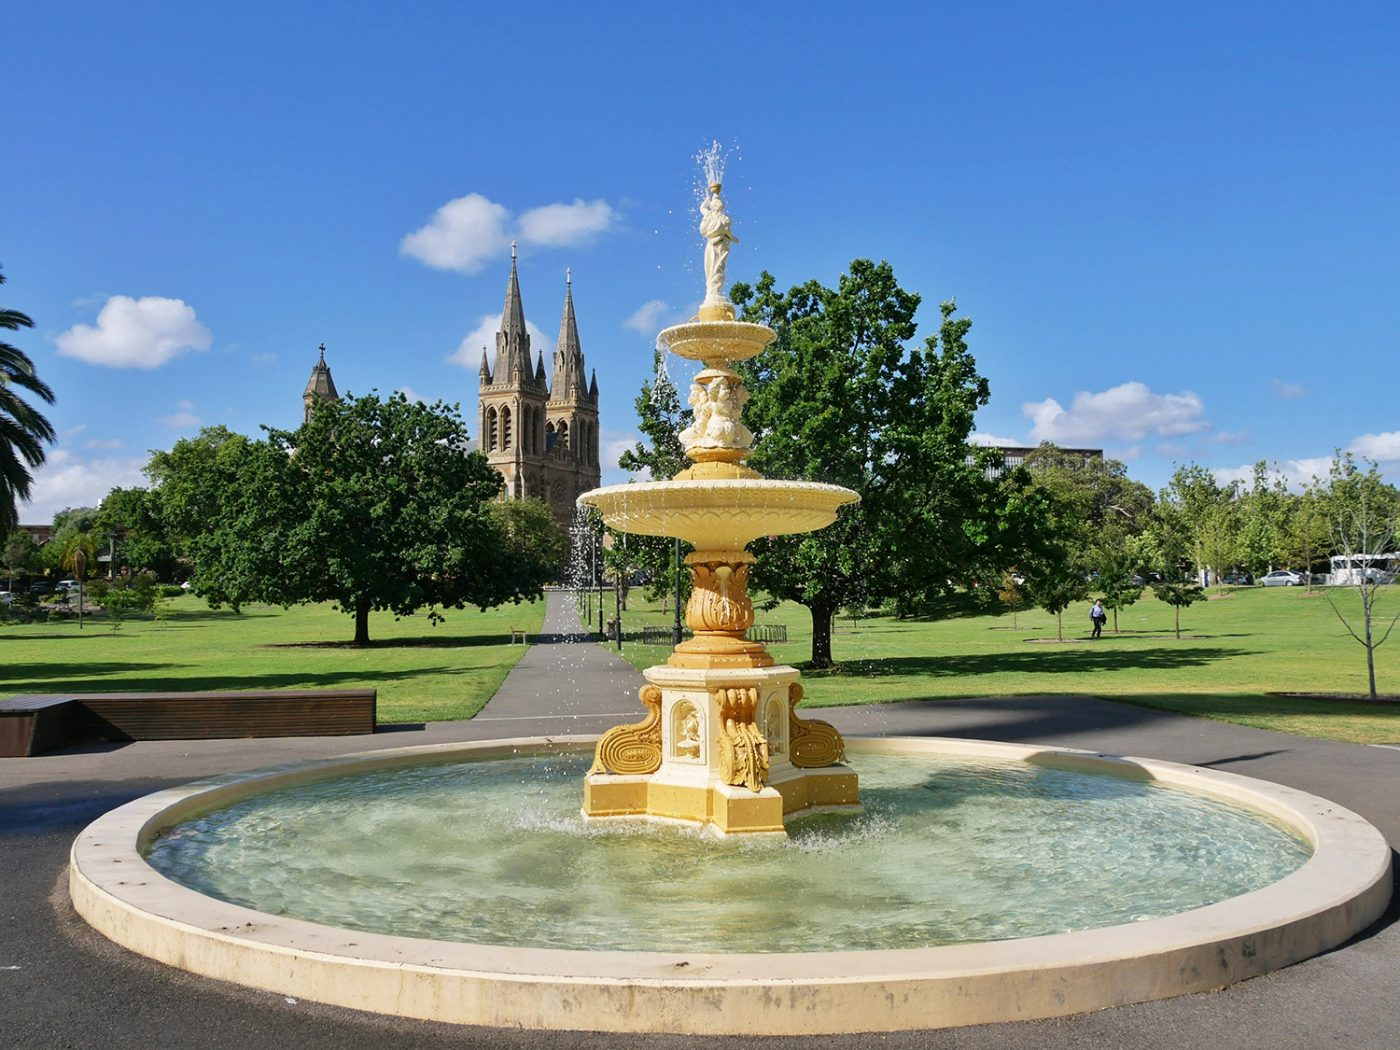 Fountain and view at he St Peter's Cathedral